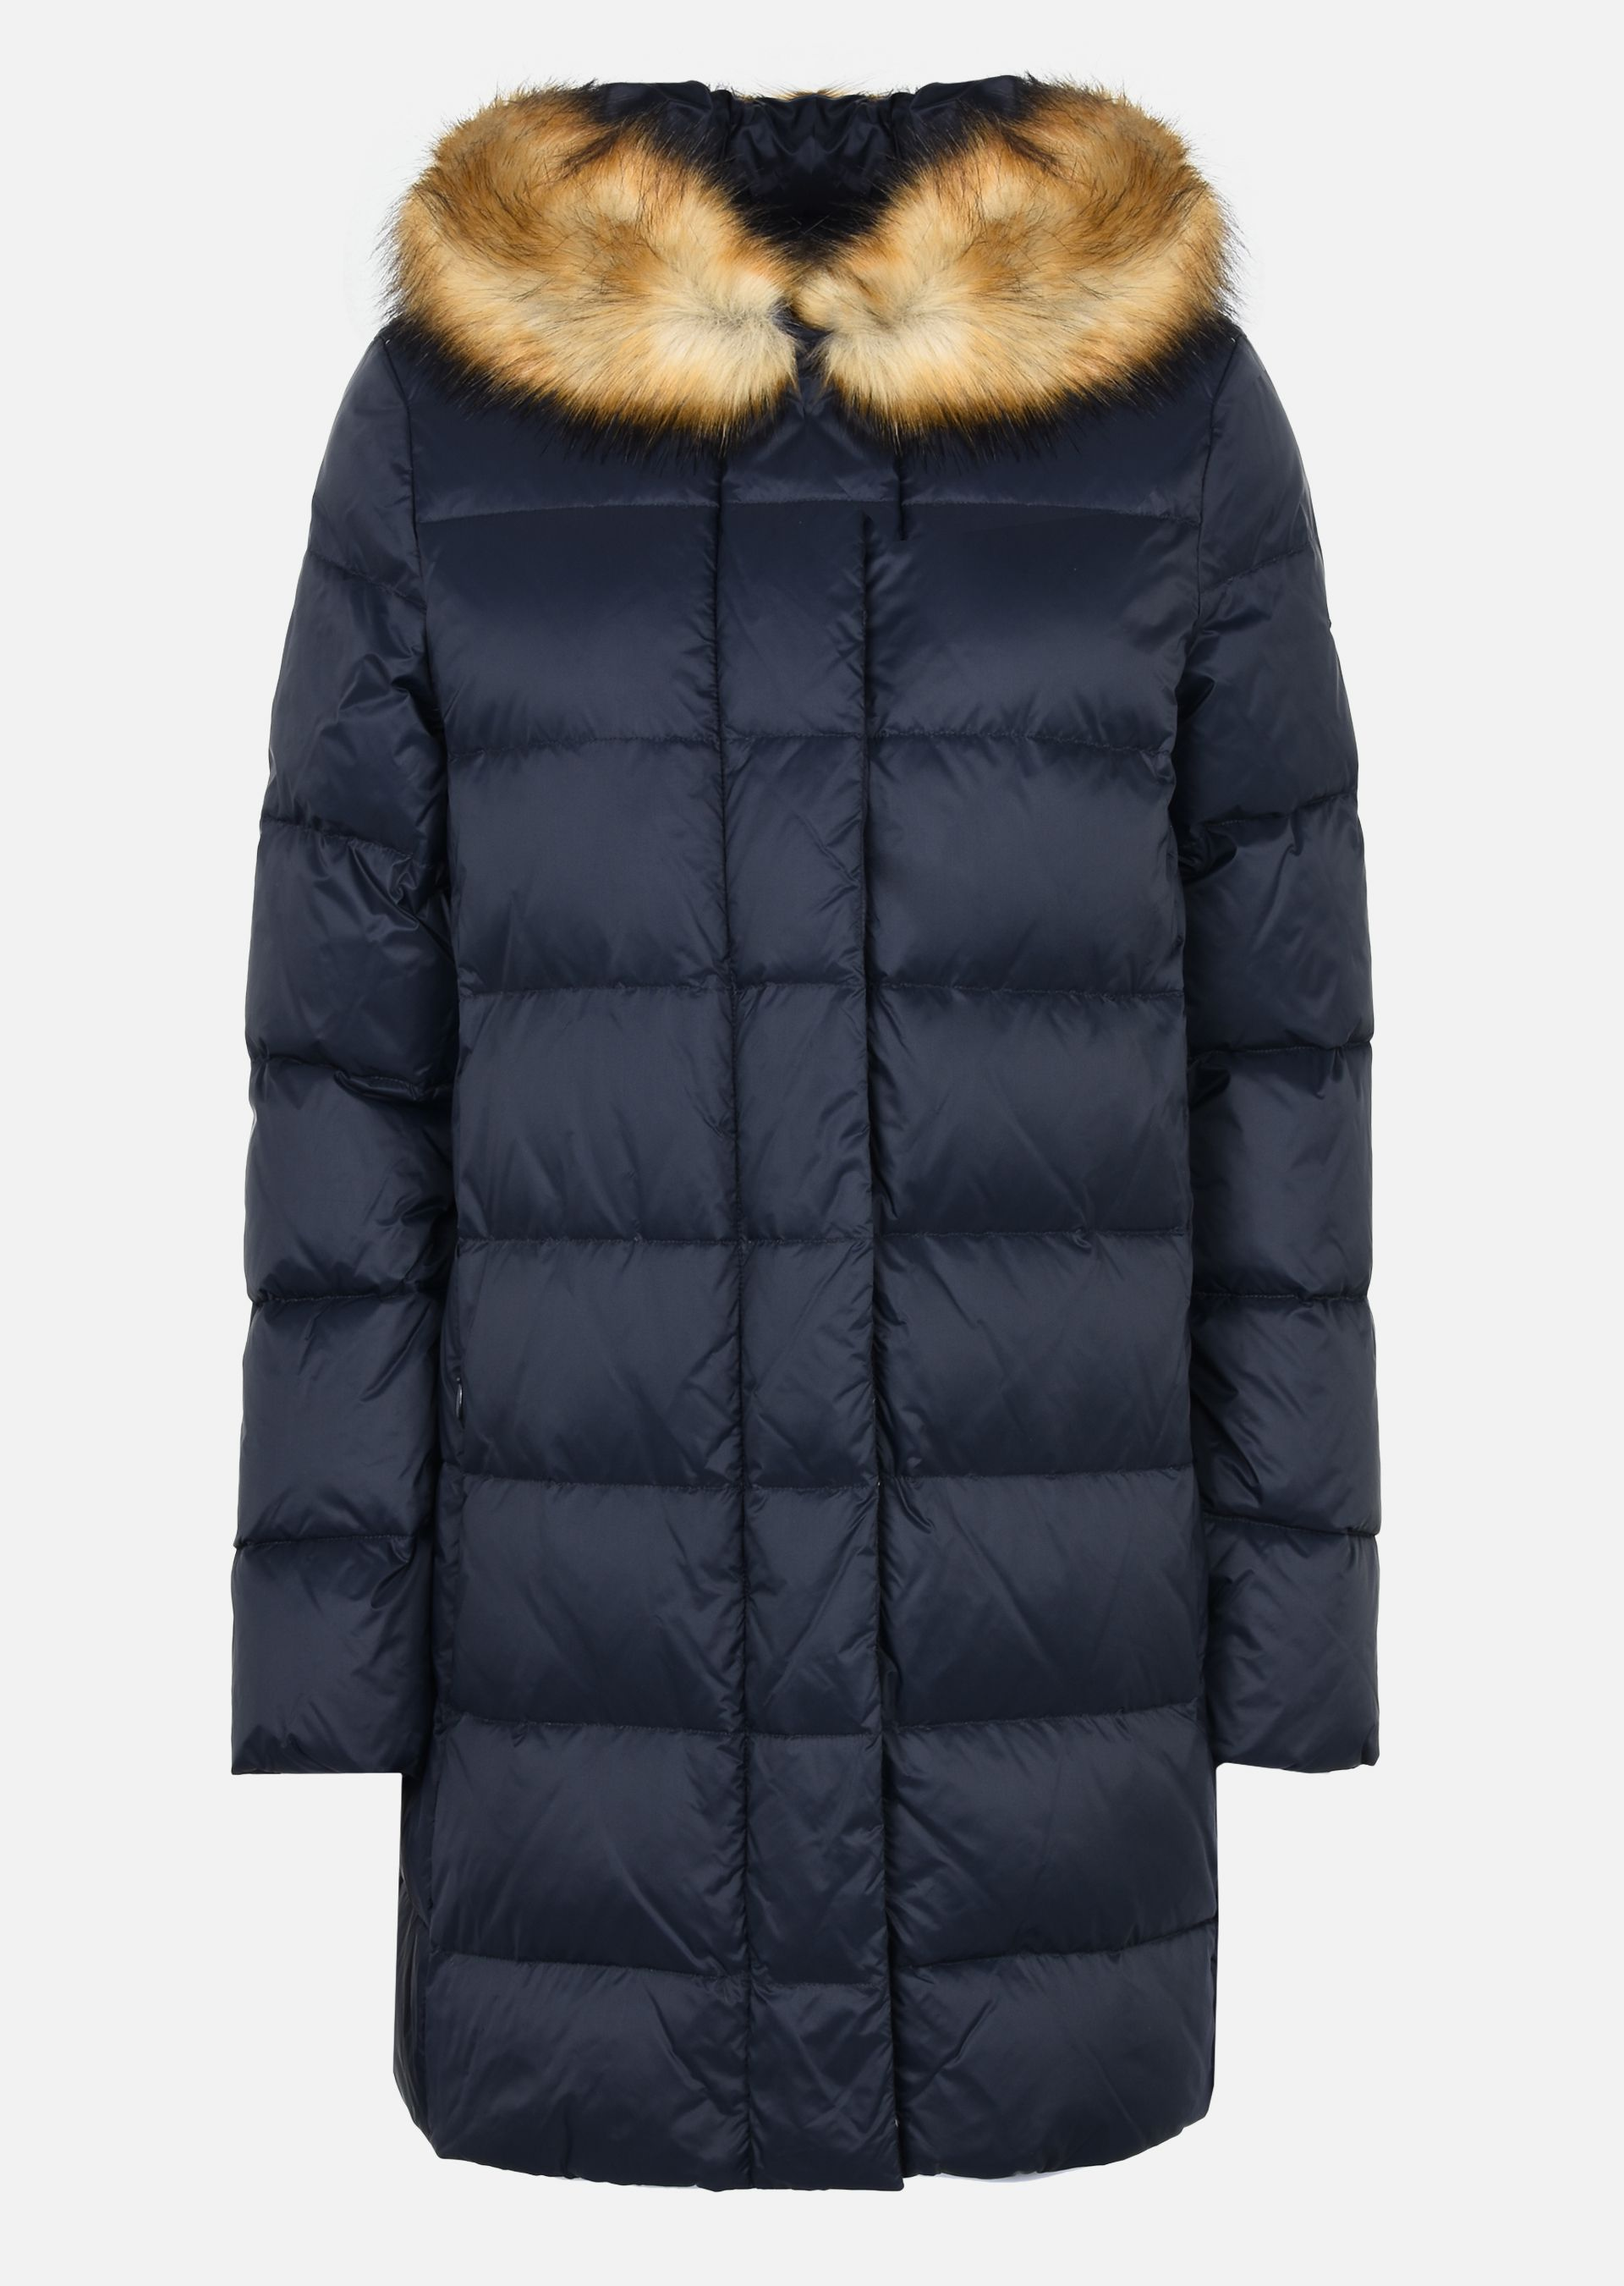 Armani hooded down jacket with fur collar